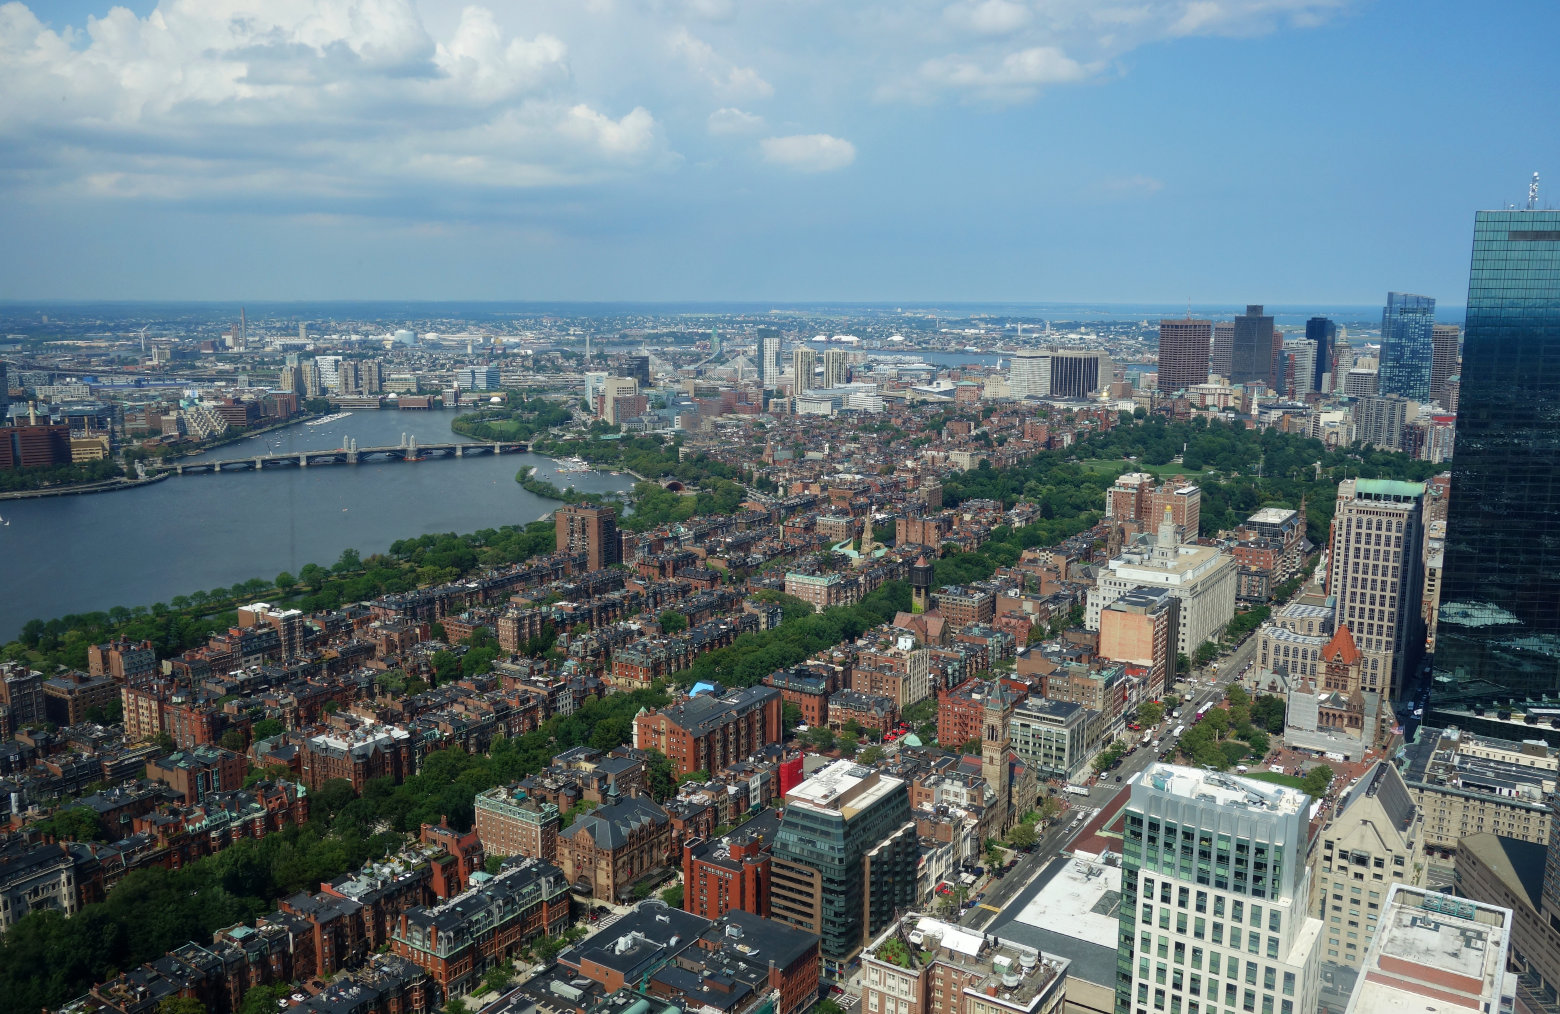 Boston Blick vom Prudential Center